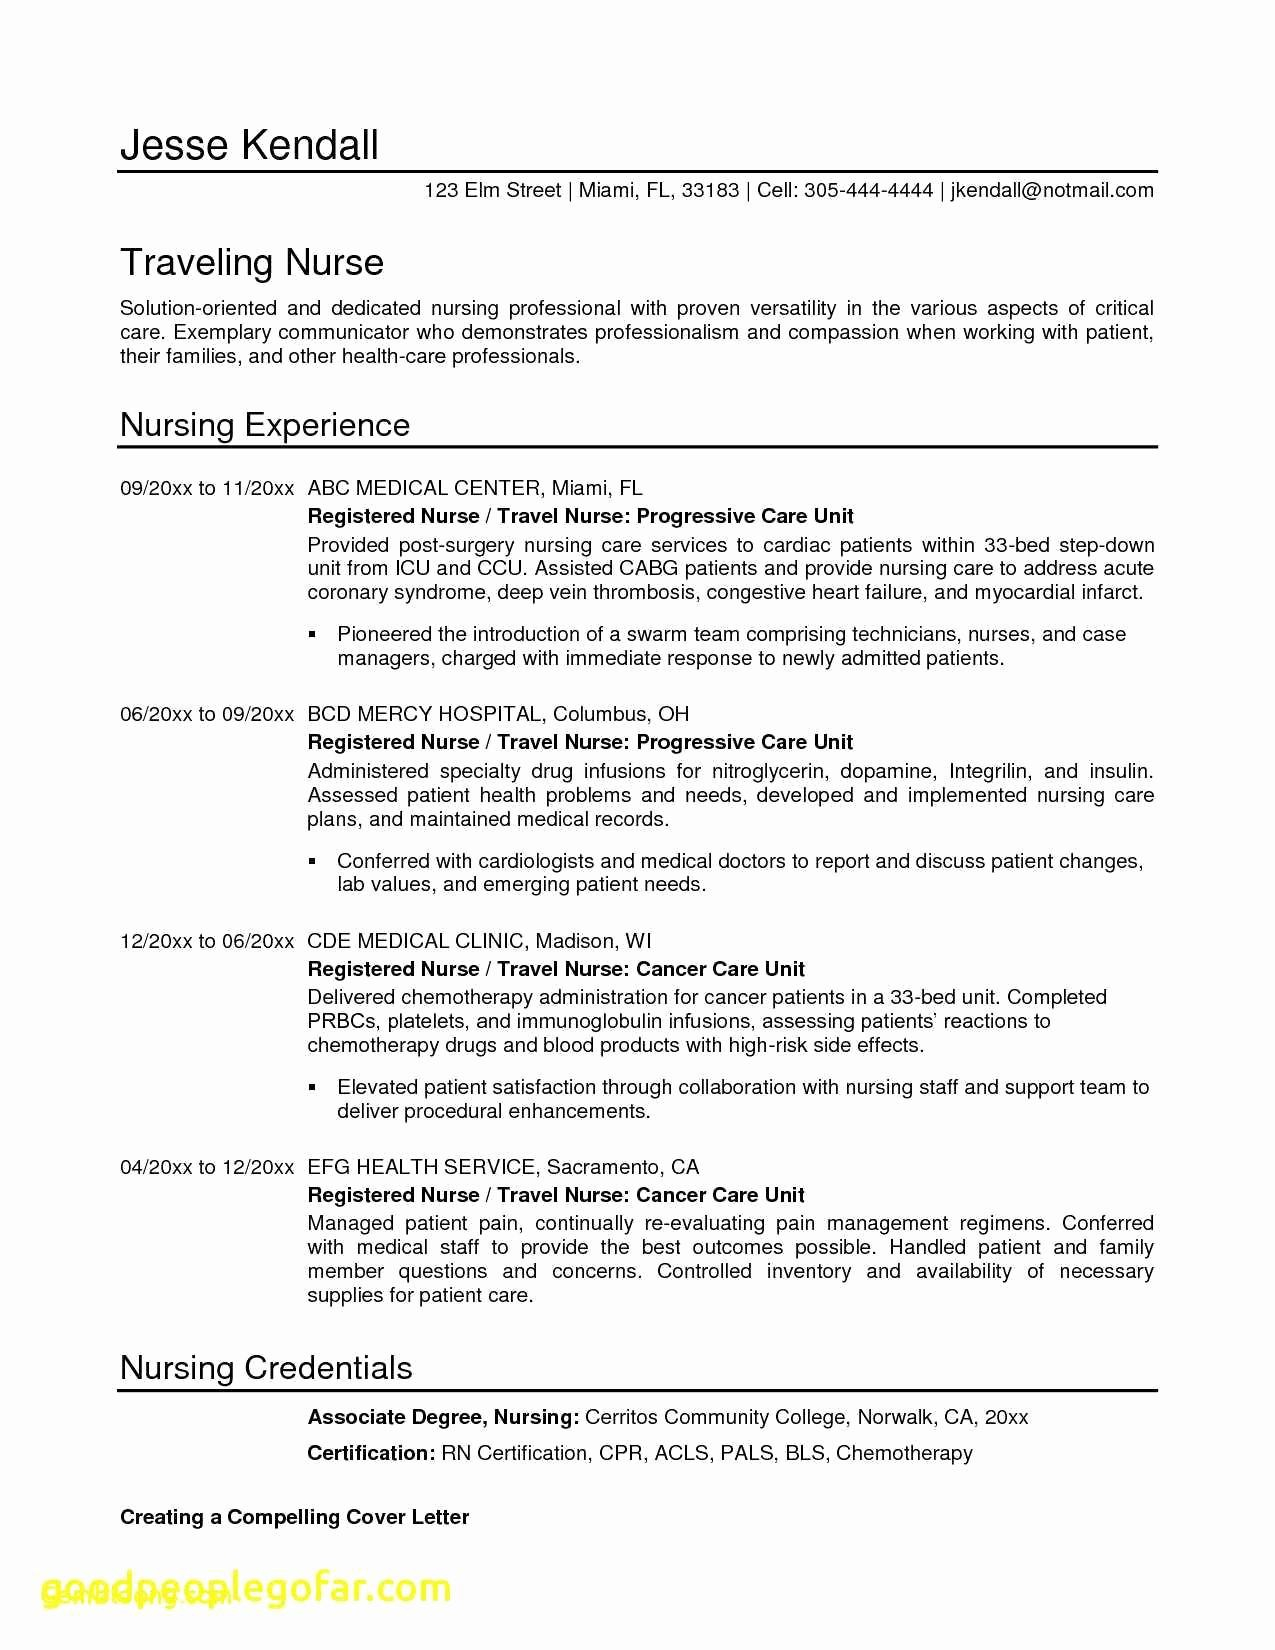 Best Professional Resume - 24 Model Professional Resume